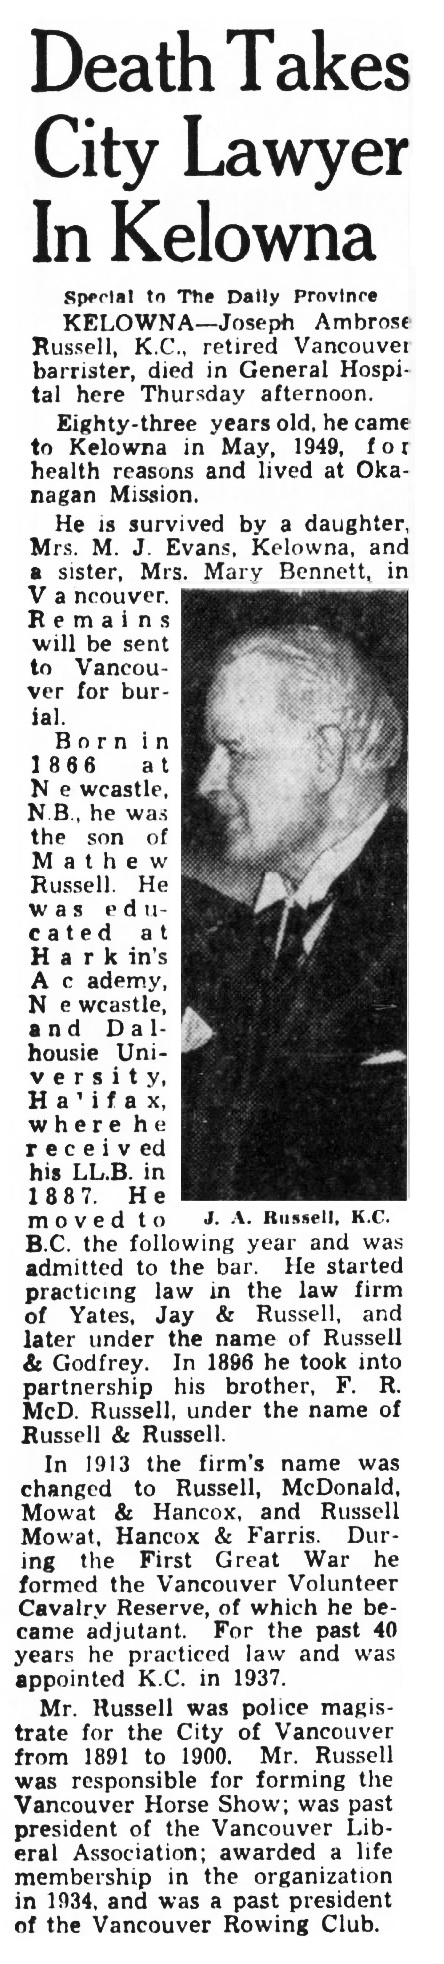 Joseph Ambrose Russell - obituary - Vancouver Province - December 16 1949 - page 42 - column 1